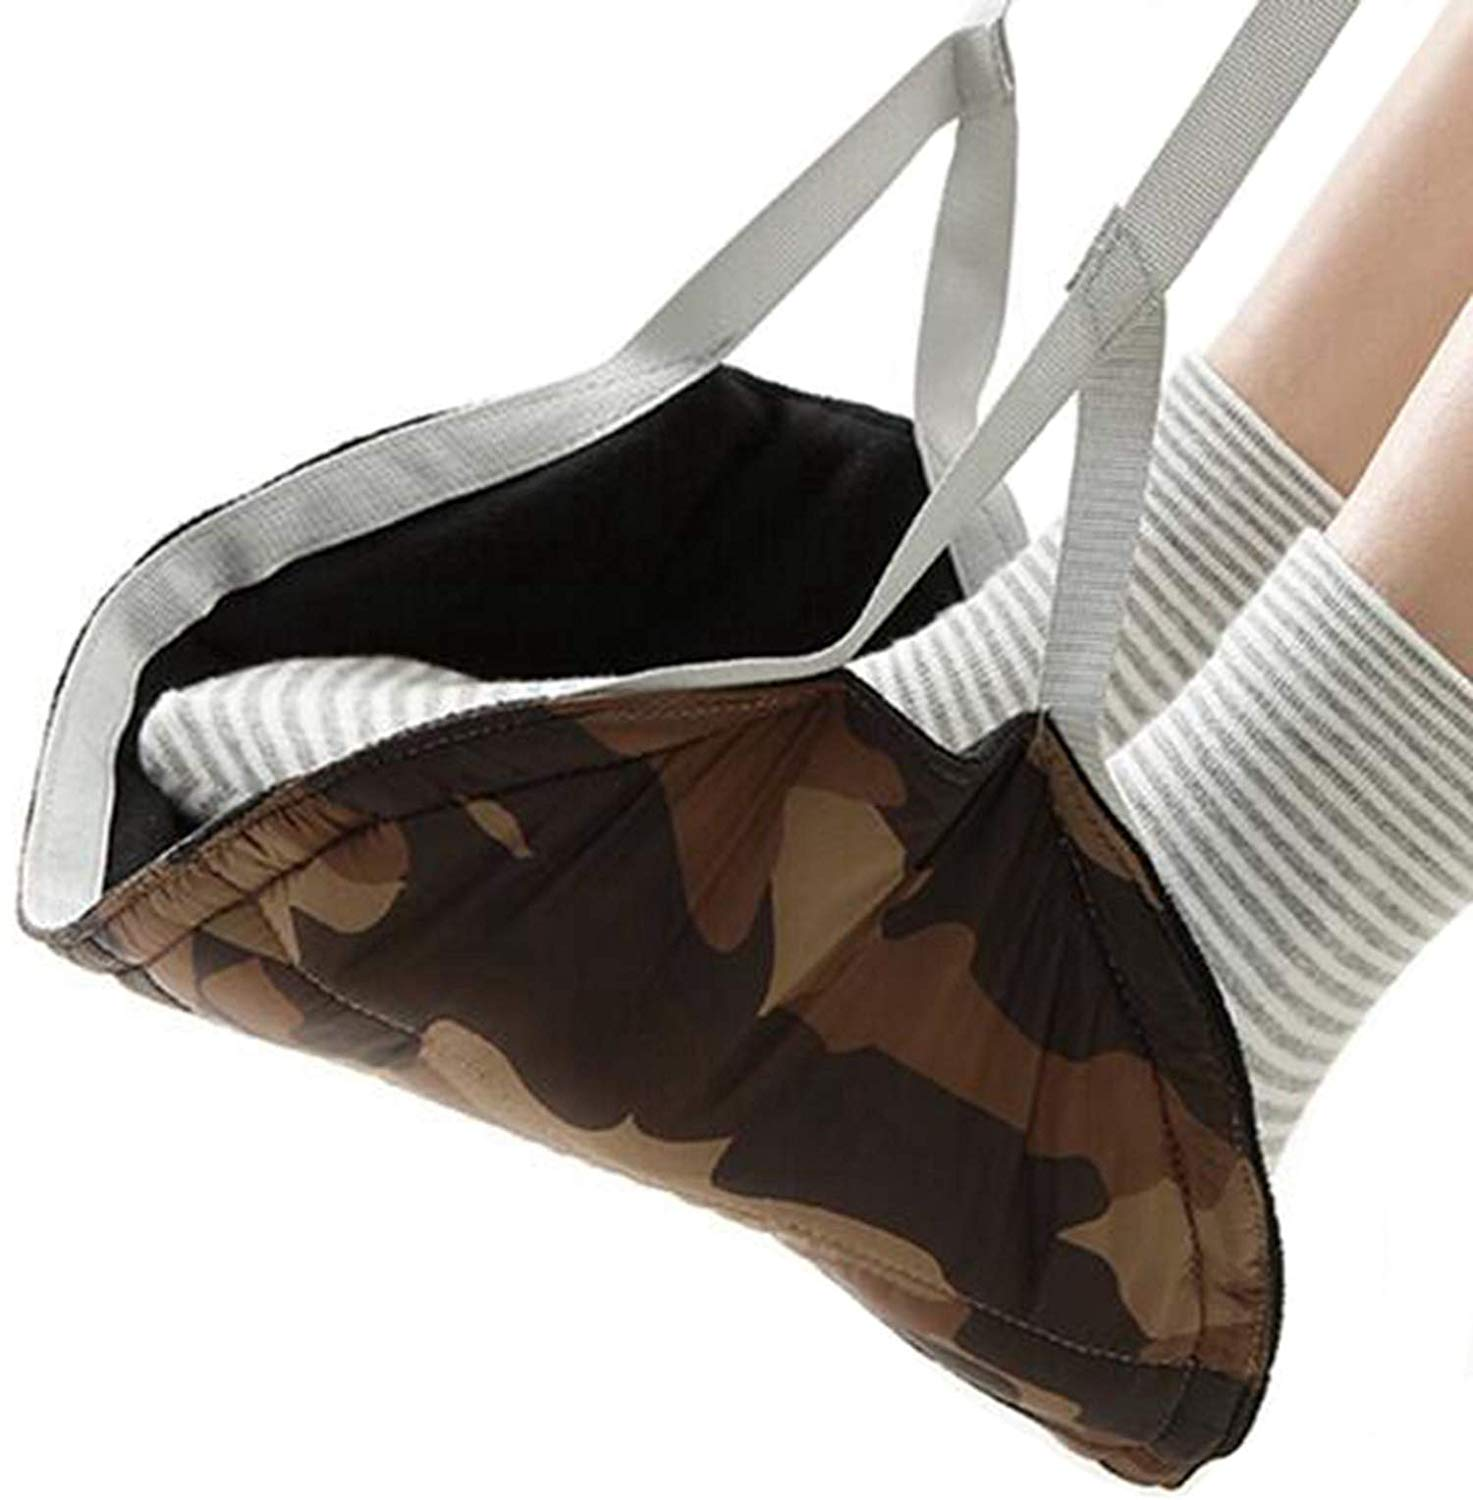 Travel Airplane Portable Foot Rest,Fukalu Feet Hammock Swing and Hang Feet [Preventing Leg Swelling] Plane Footrest, Adjustable Height Portable Travel Foot Rest for Airplane Office (Camo Coffee)